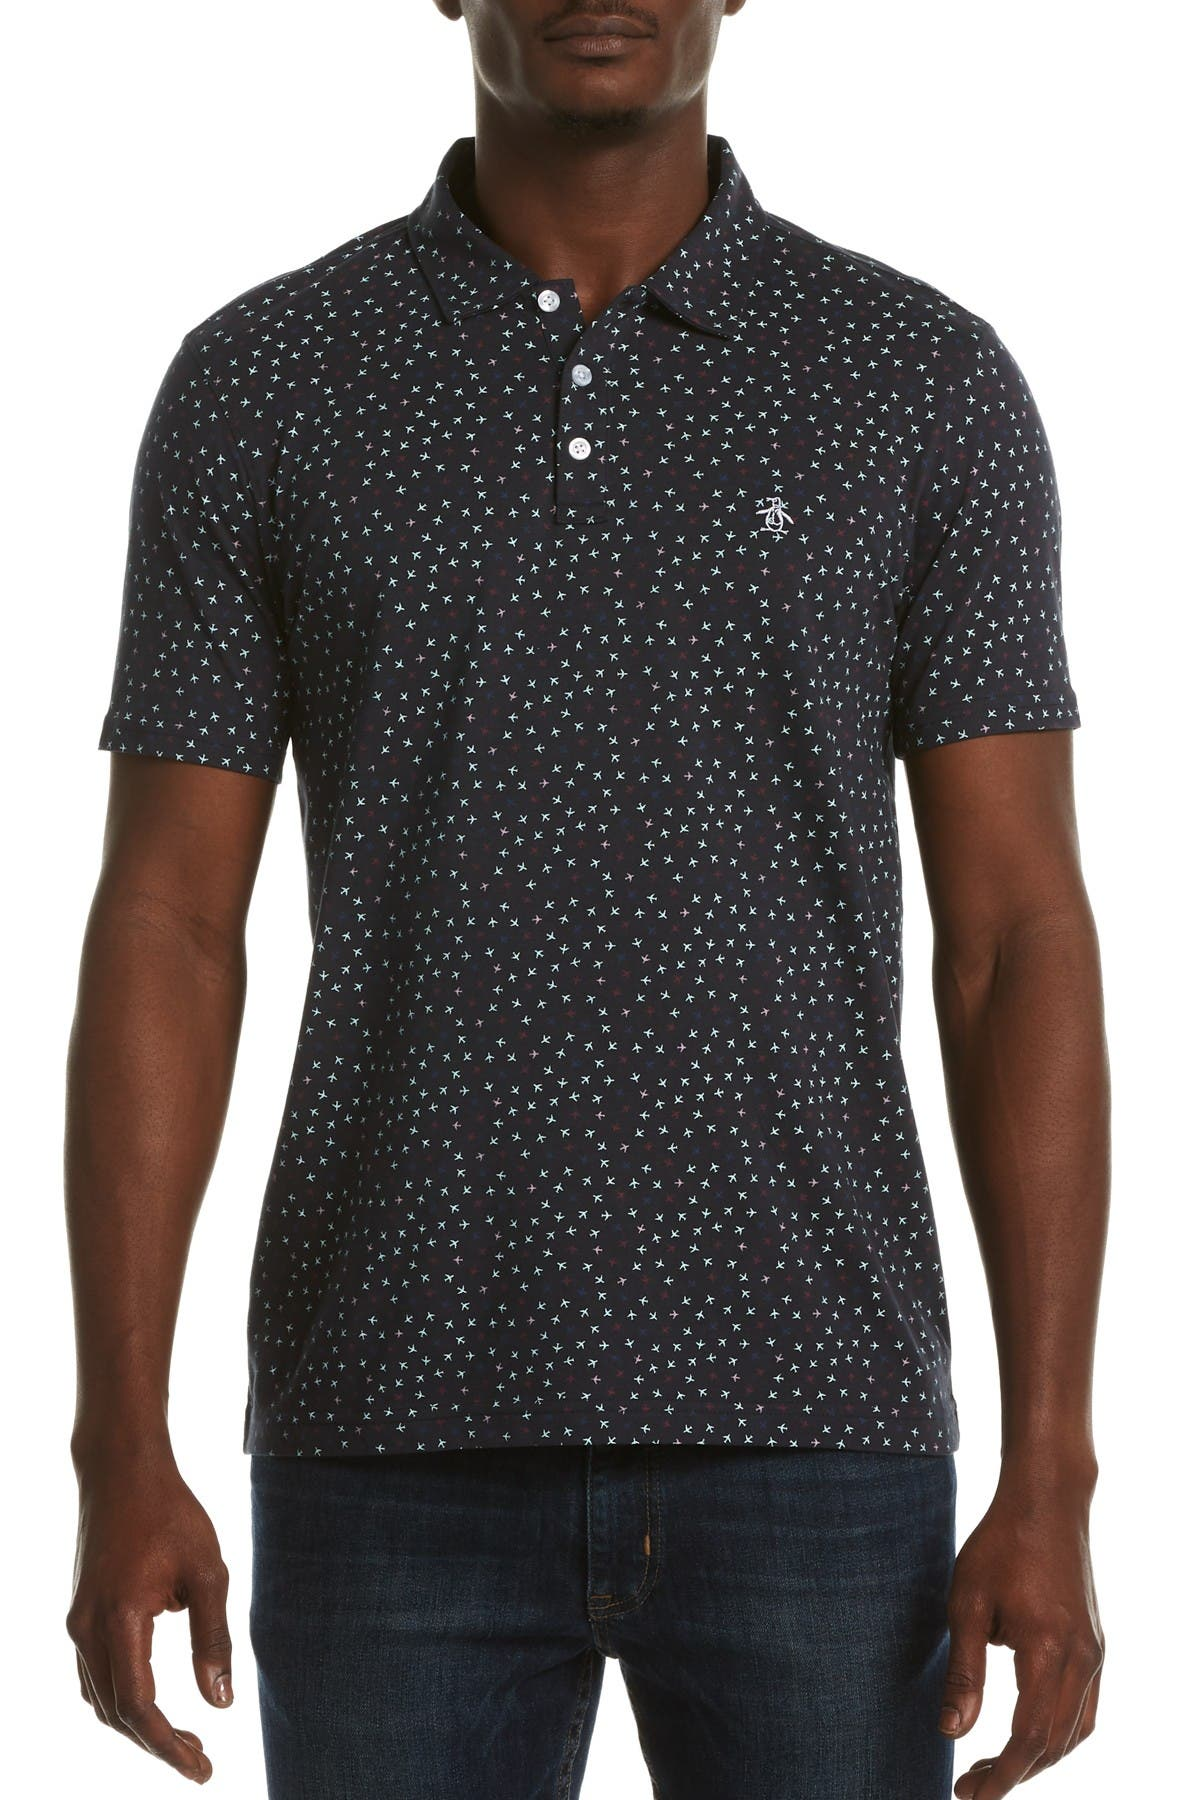 Image of Original Penguin Plane Print Slim Fit Jersey Polo